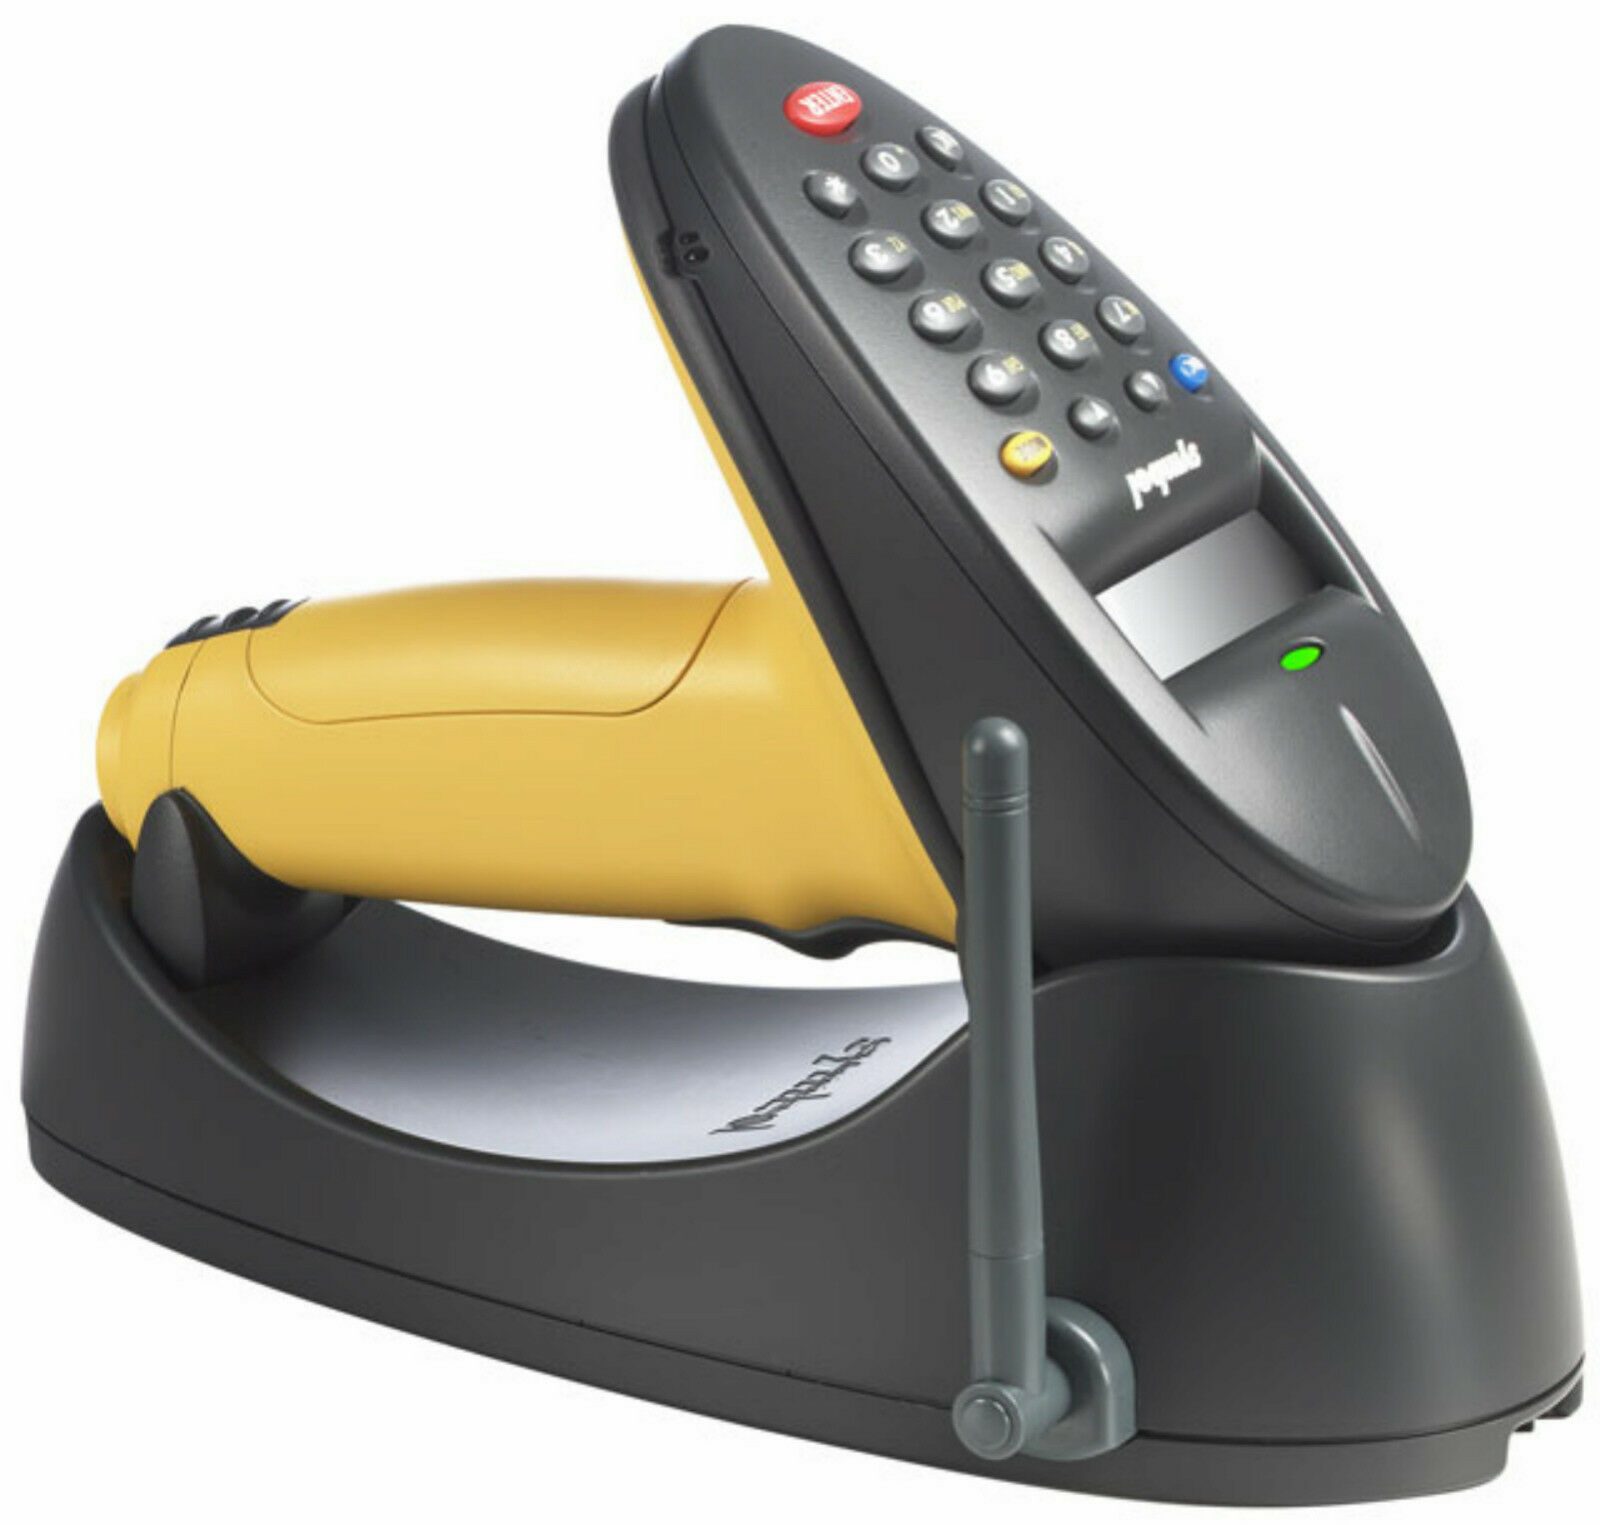 Symbol P370 Wireless Bluetooth Barcode Scanner Ps2 Ps2 P470 P360